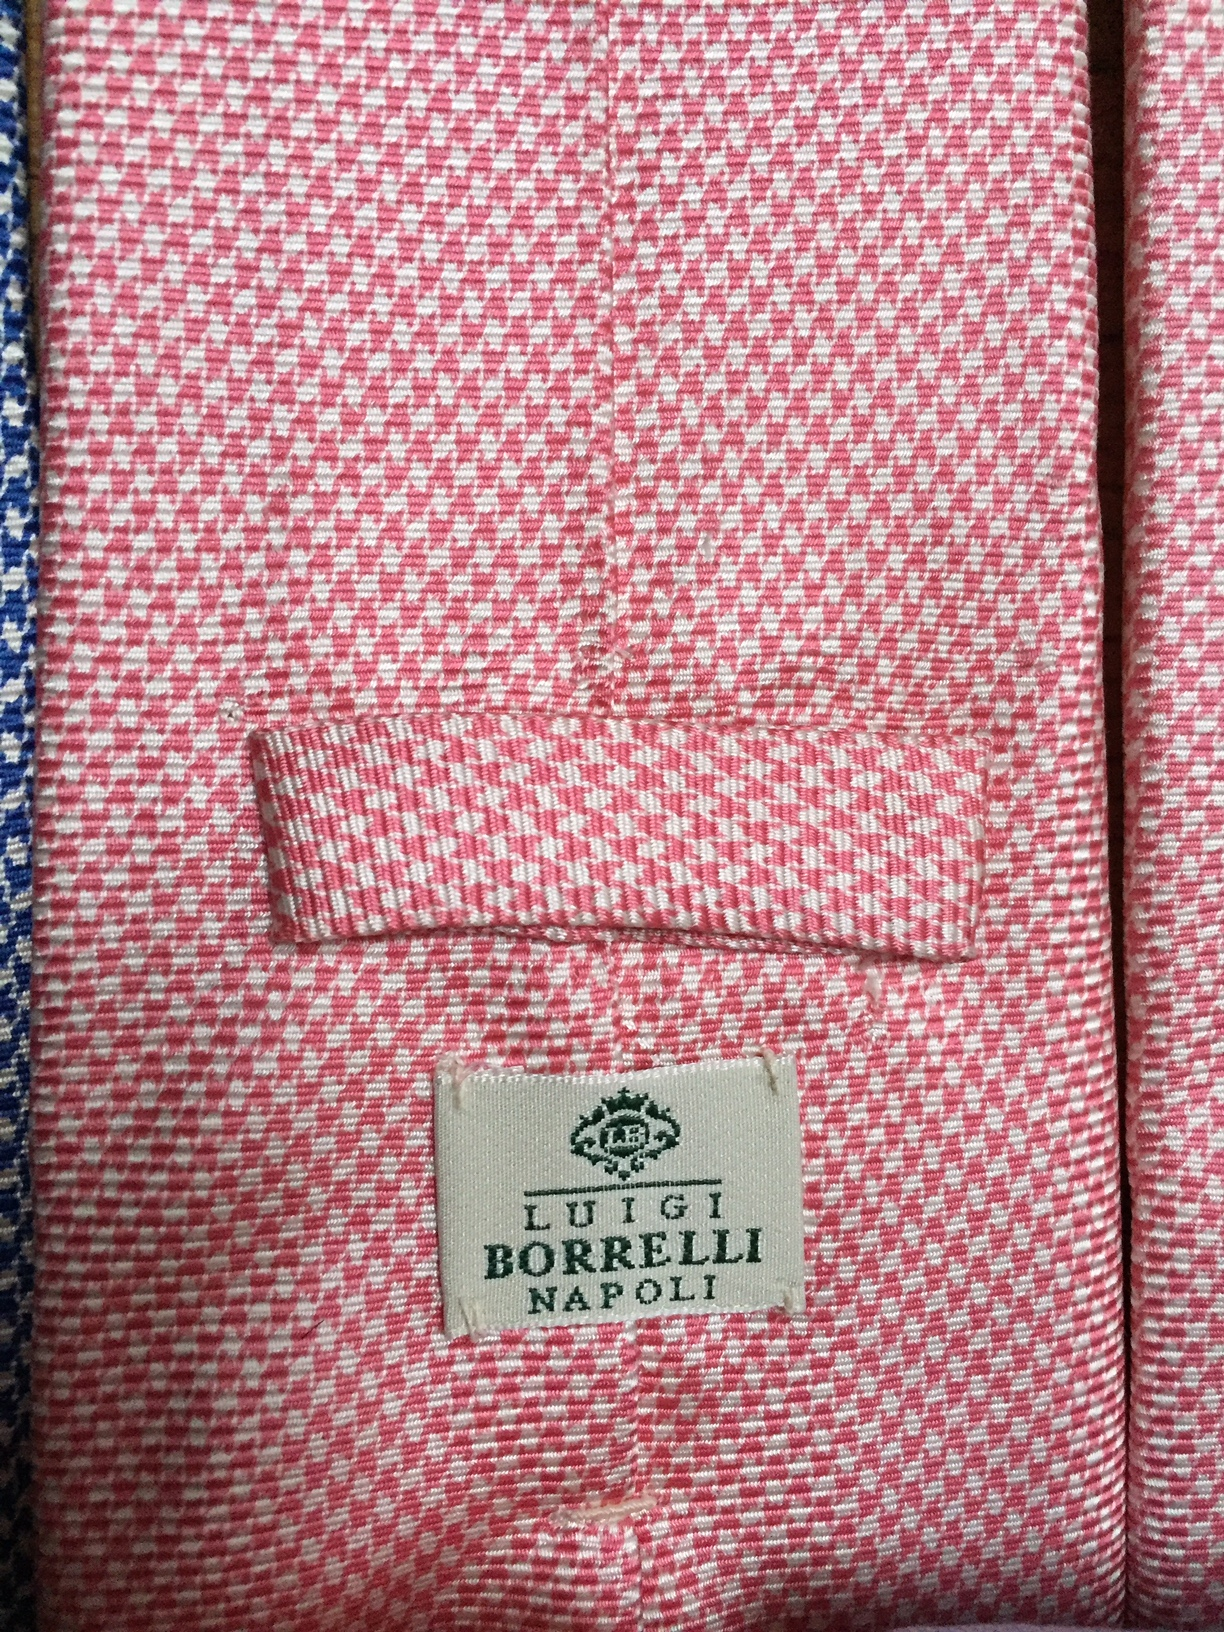 Borrelli Label 3